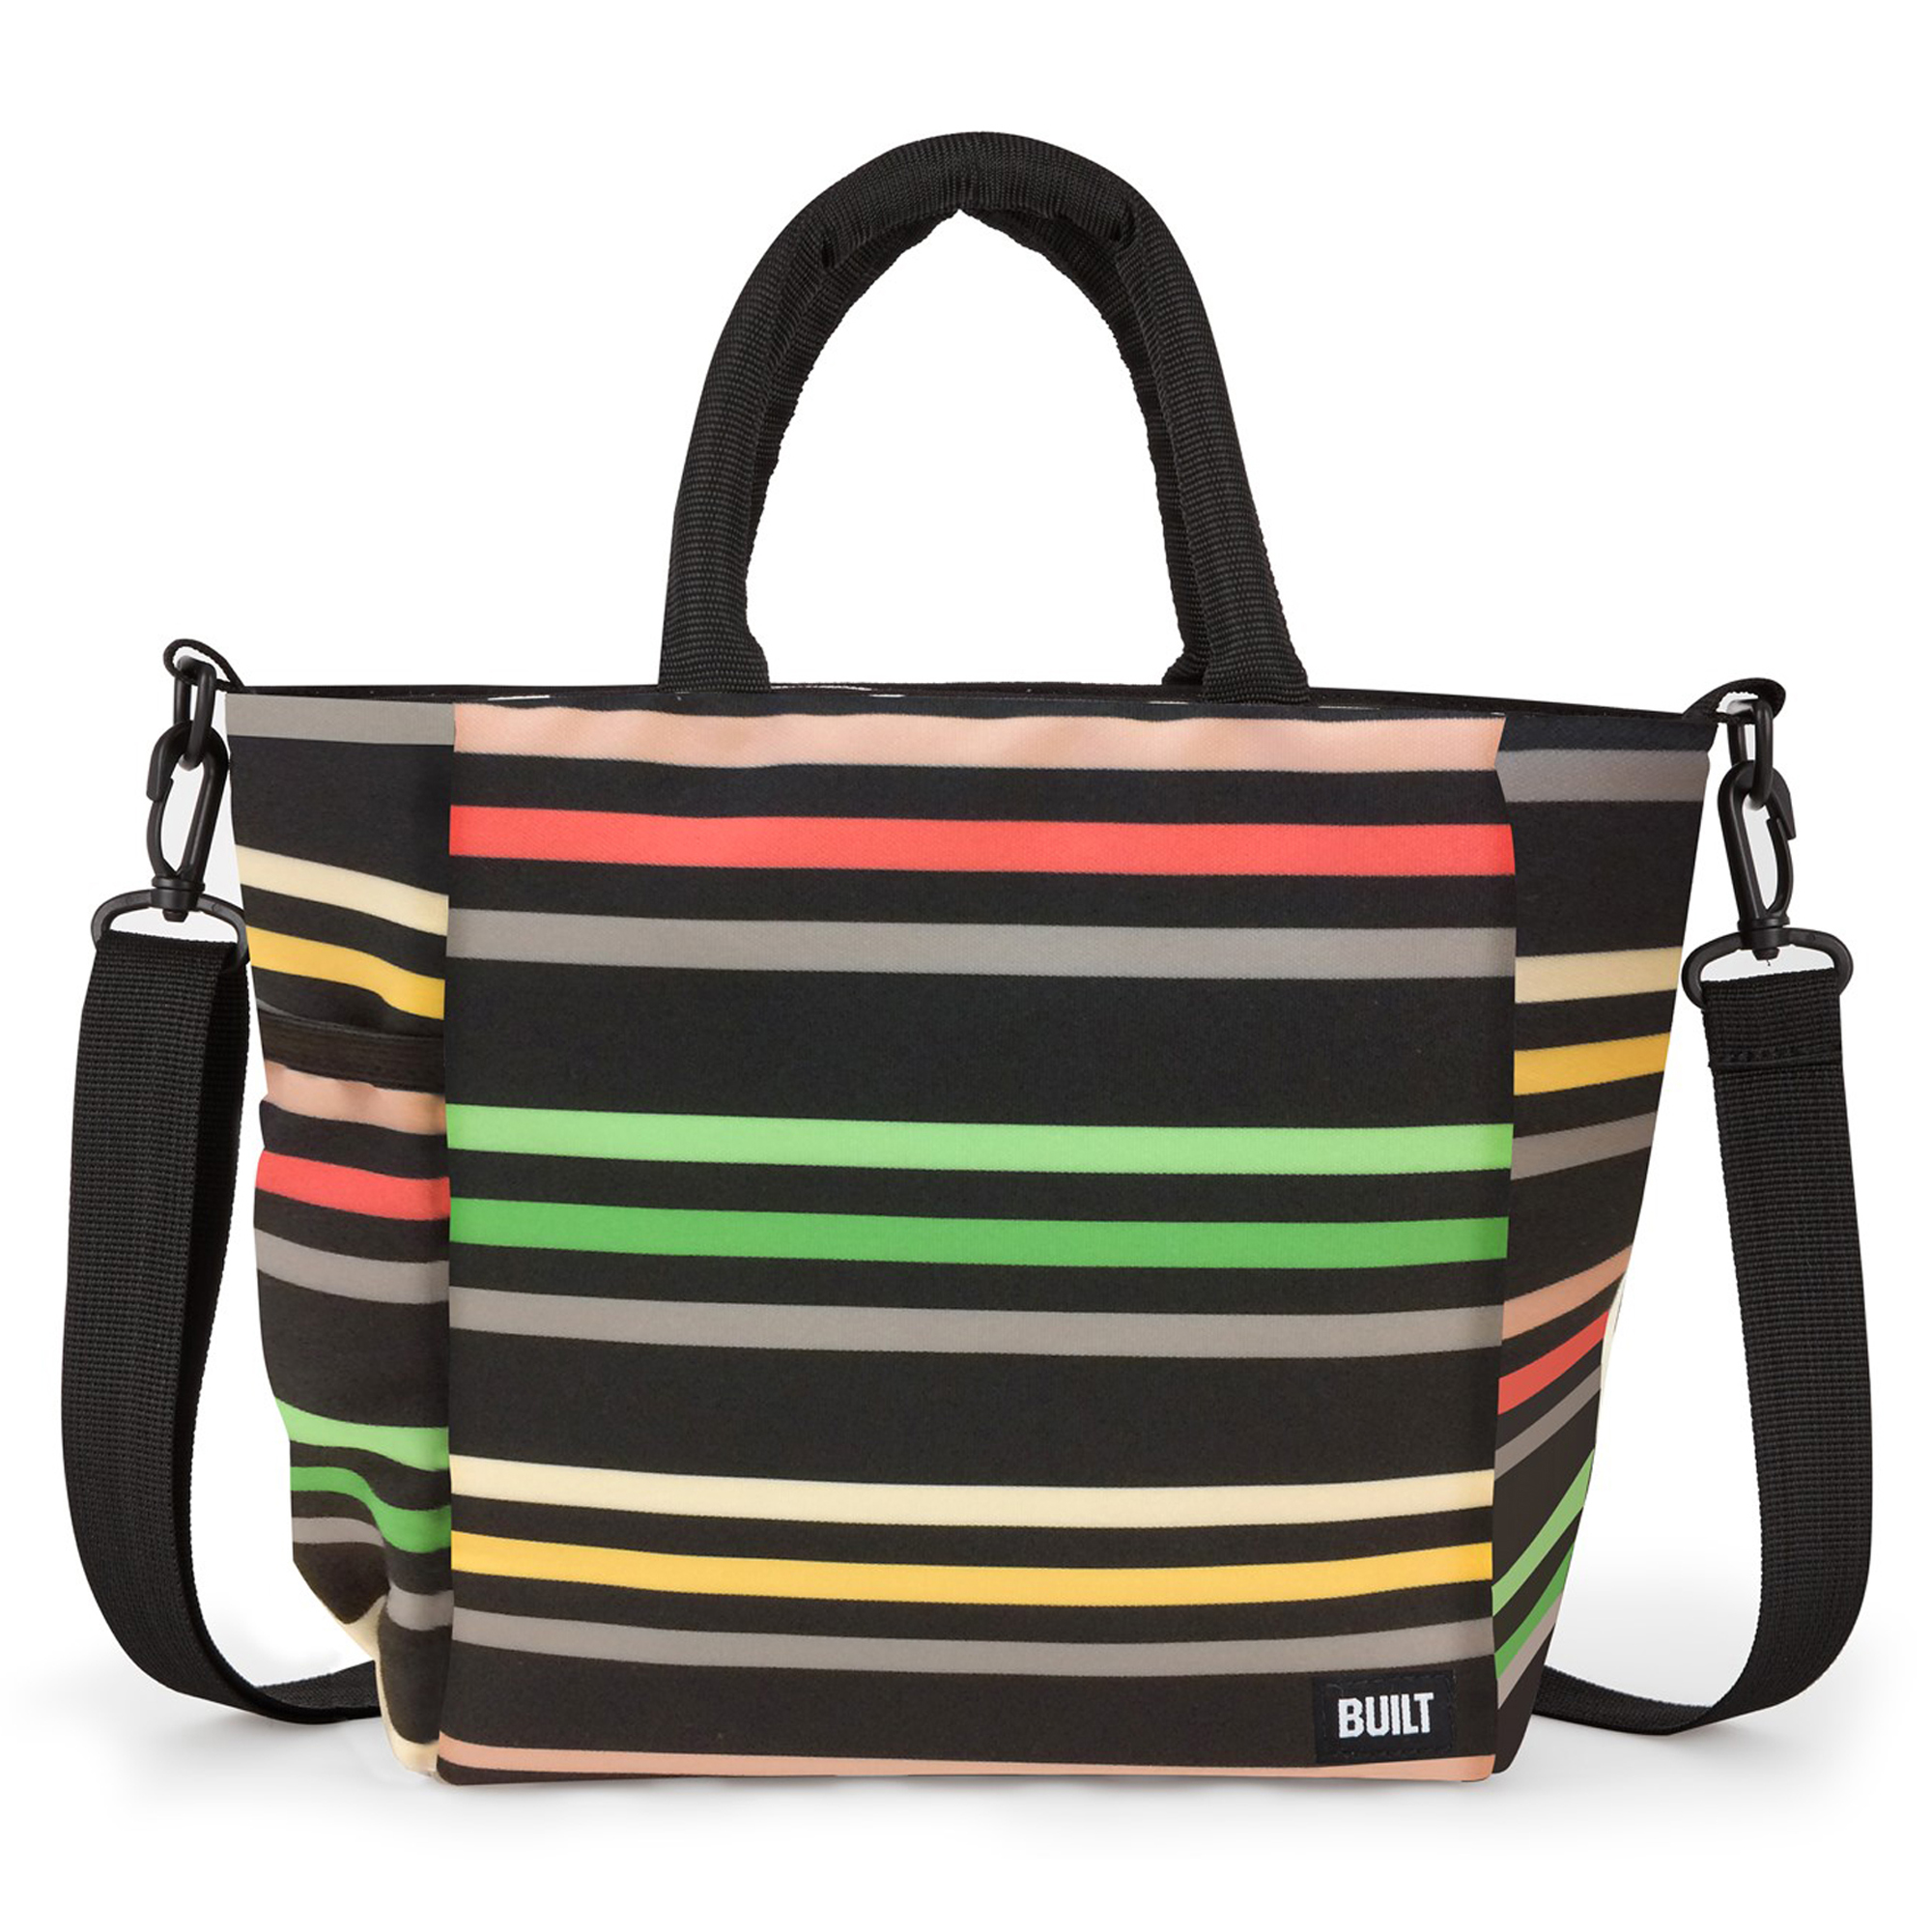 Built NY I Love Lunch Black Multi-Colored Striped Lunch Tote